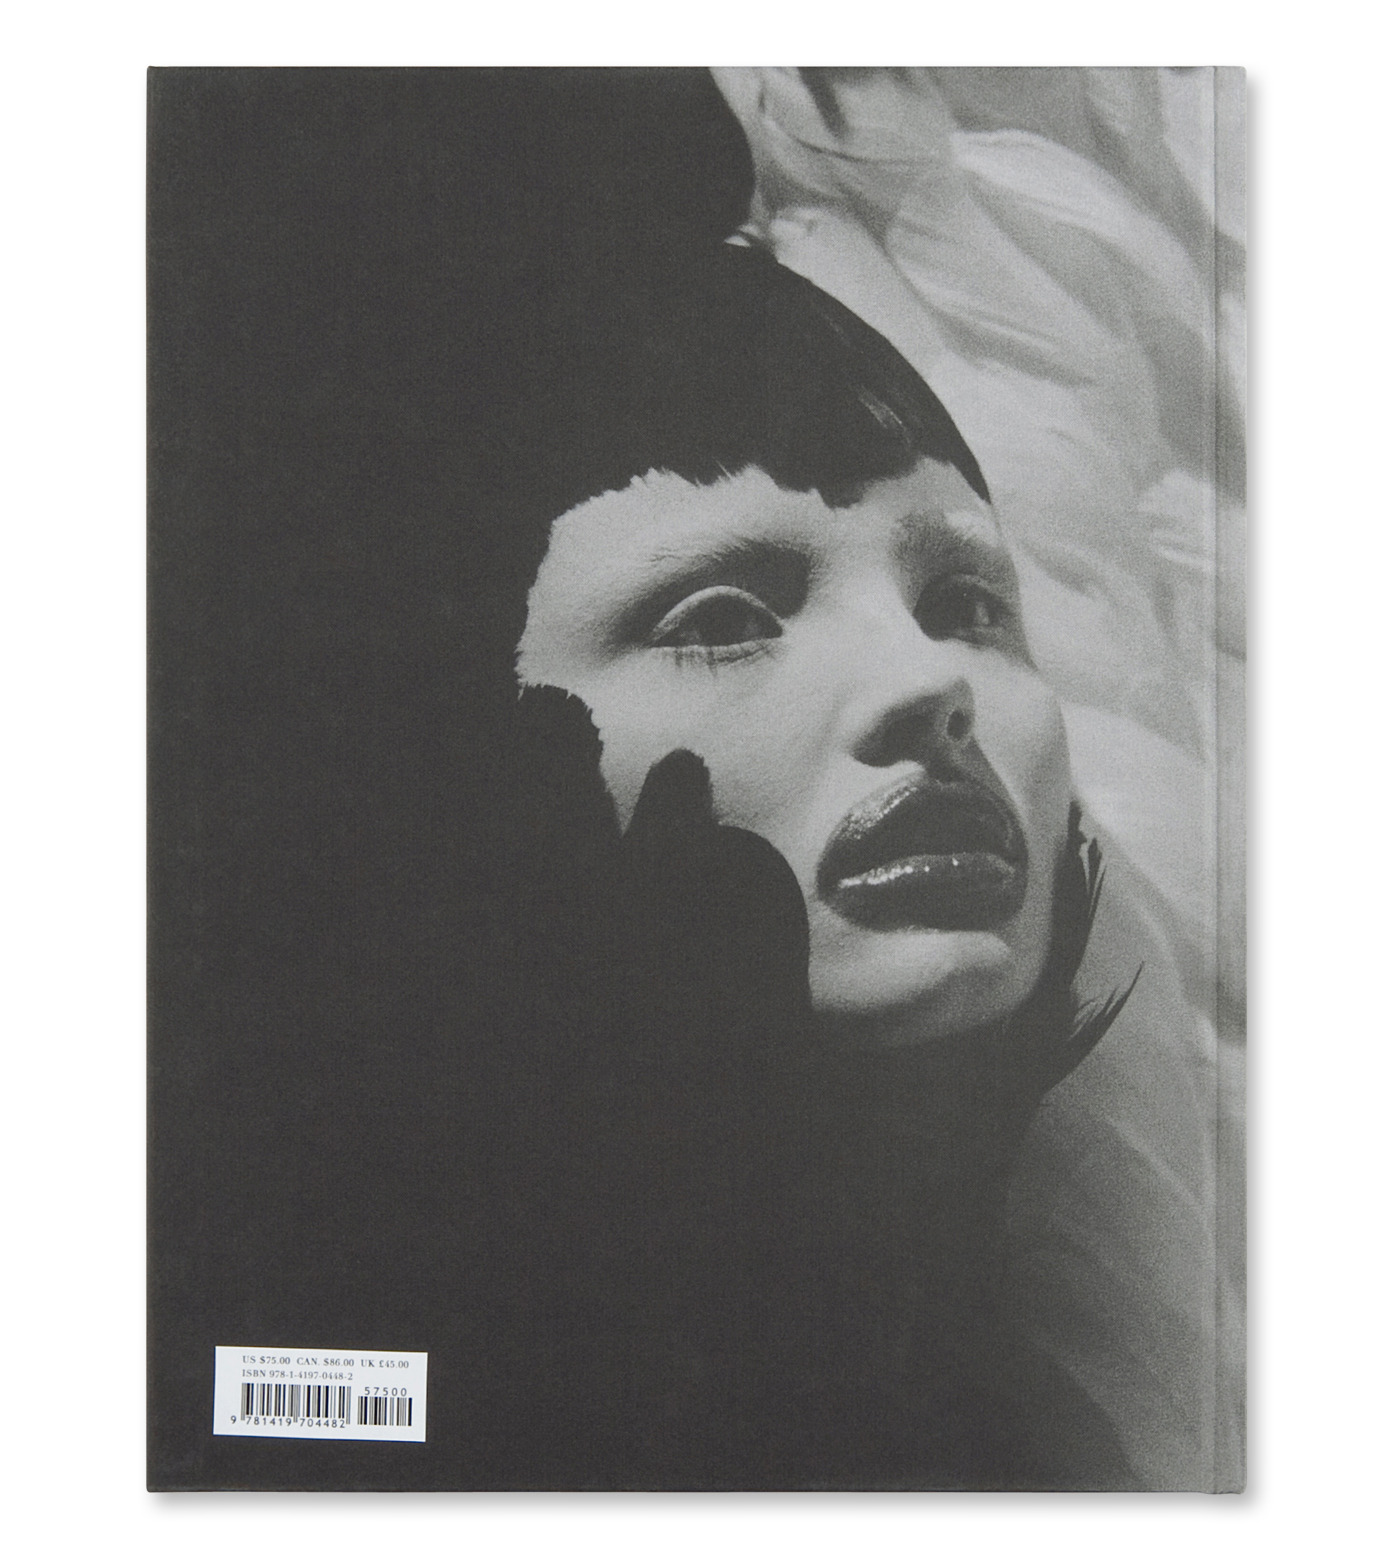 ArtBook(アートブック)のLove looks not with the eyes: thirteen years with lee alexander mcqueen.-GRAY(インテリア/OTHER-GOODS/interior/OTHER-GOODS)-4197-0448-2-11 拡大詳細画像6